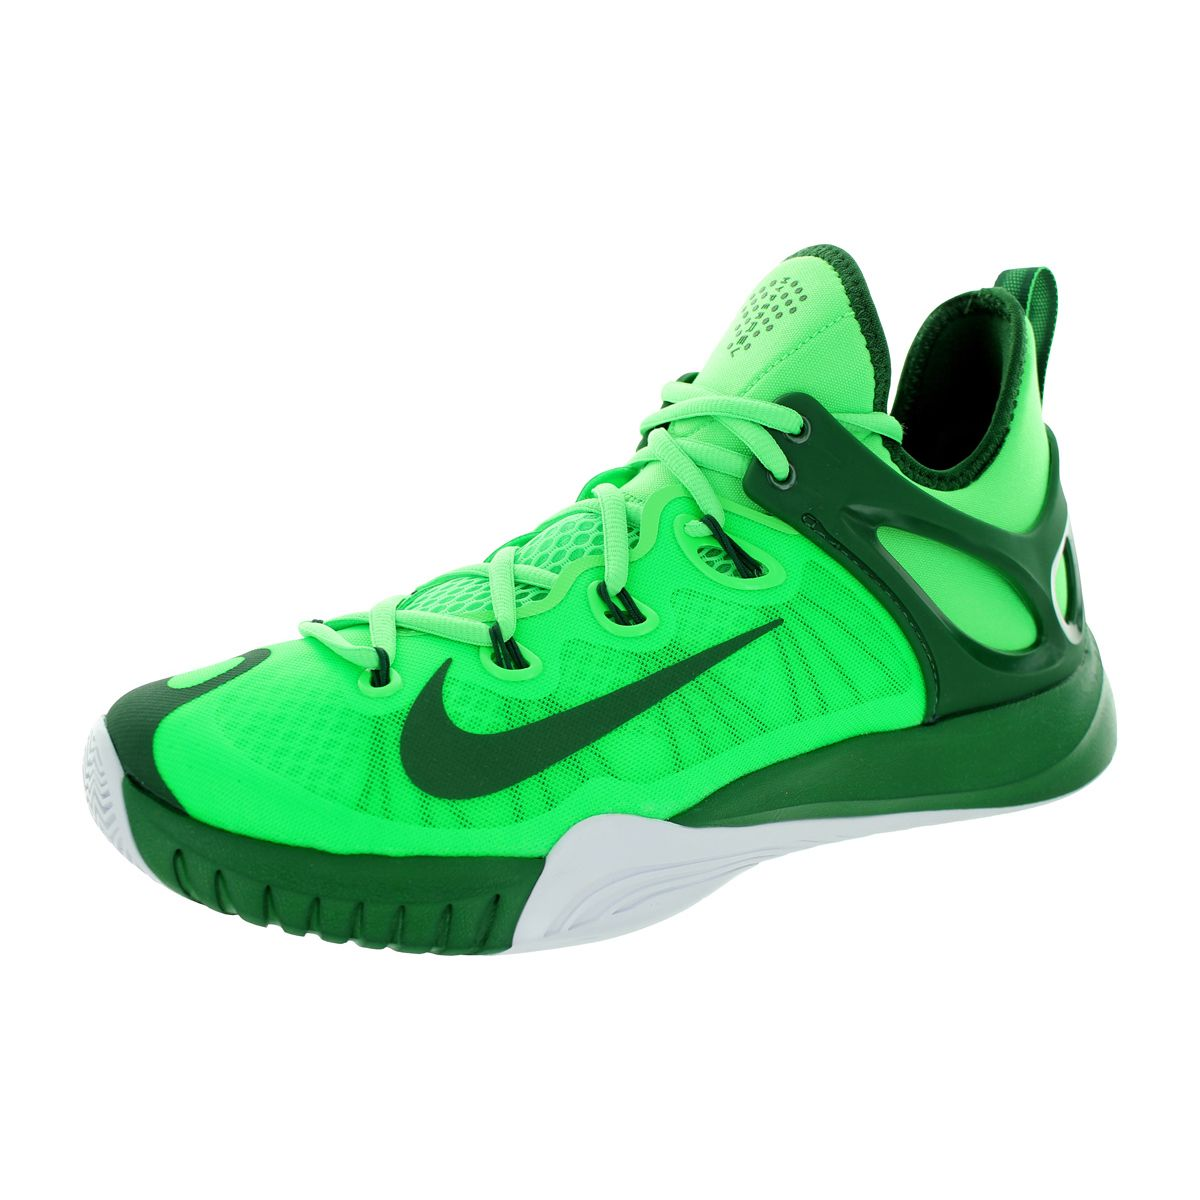 sneakers for cheap 2d431 5db86 Nike Men s Zoom Hyperrev 2015 Poison  GOrangee Greem White Basketball Shoe